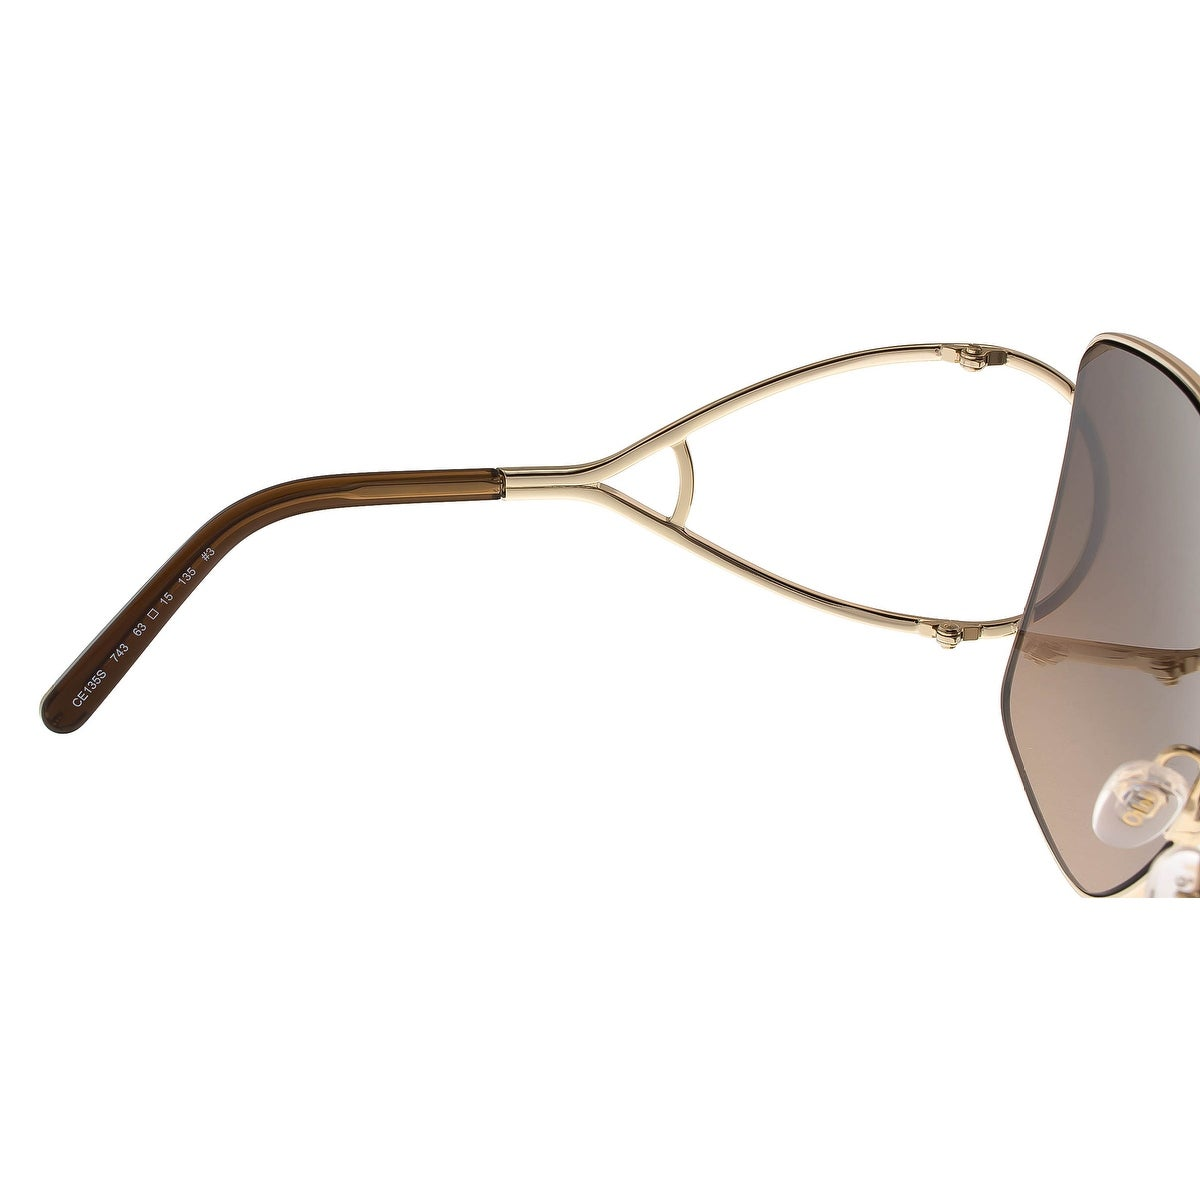 98f8435ecb Shop Chloe CE135 S 743 Gold Brown Square Sunglasses - 63-15-135 - Free  Shipping Today - Overstock - 26290683